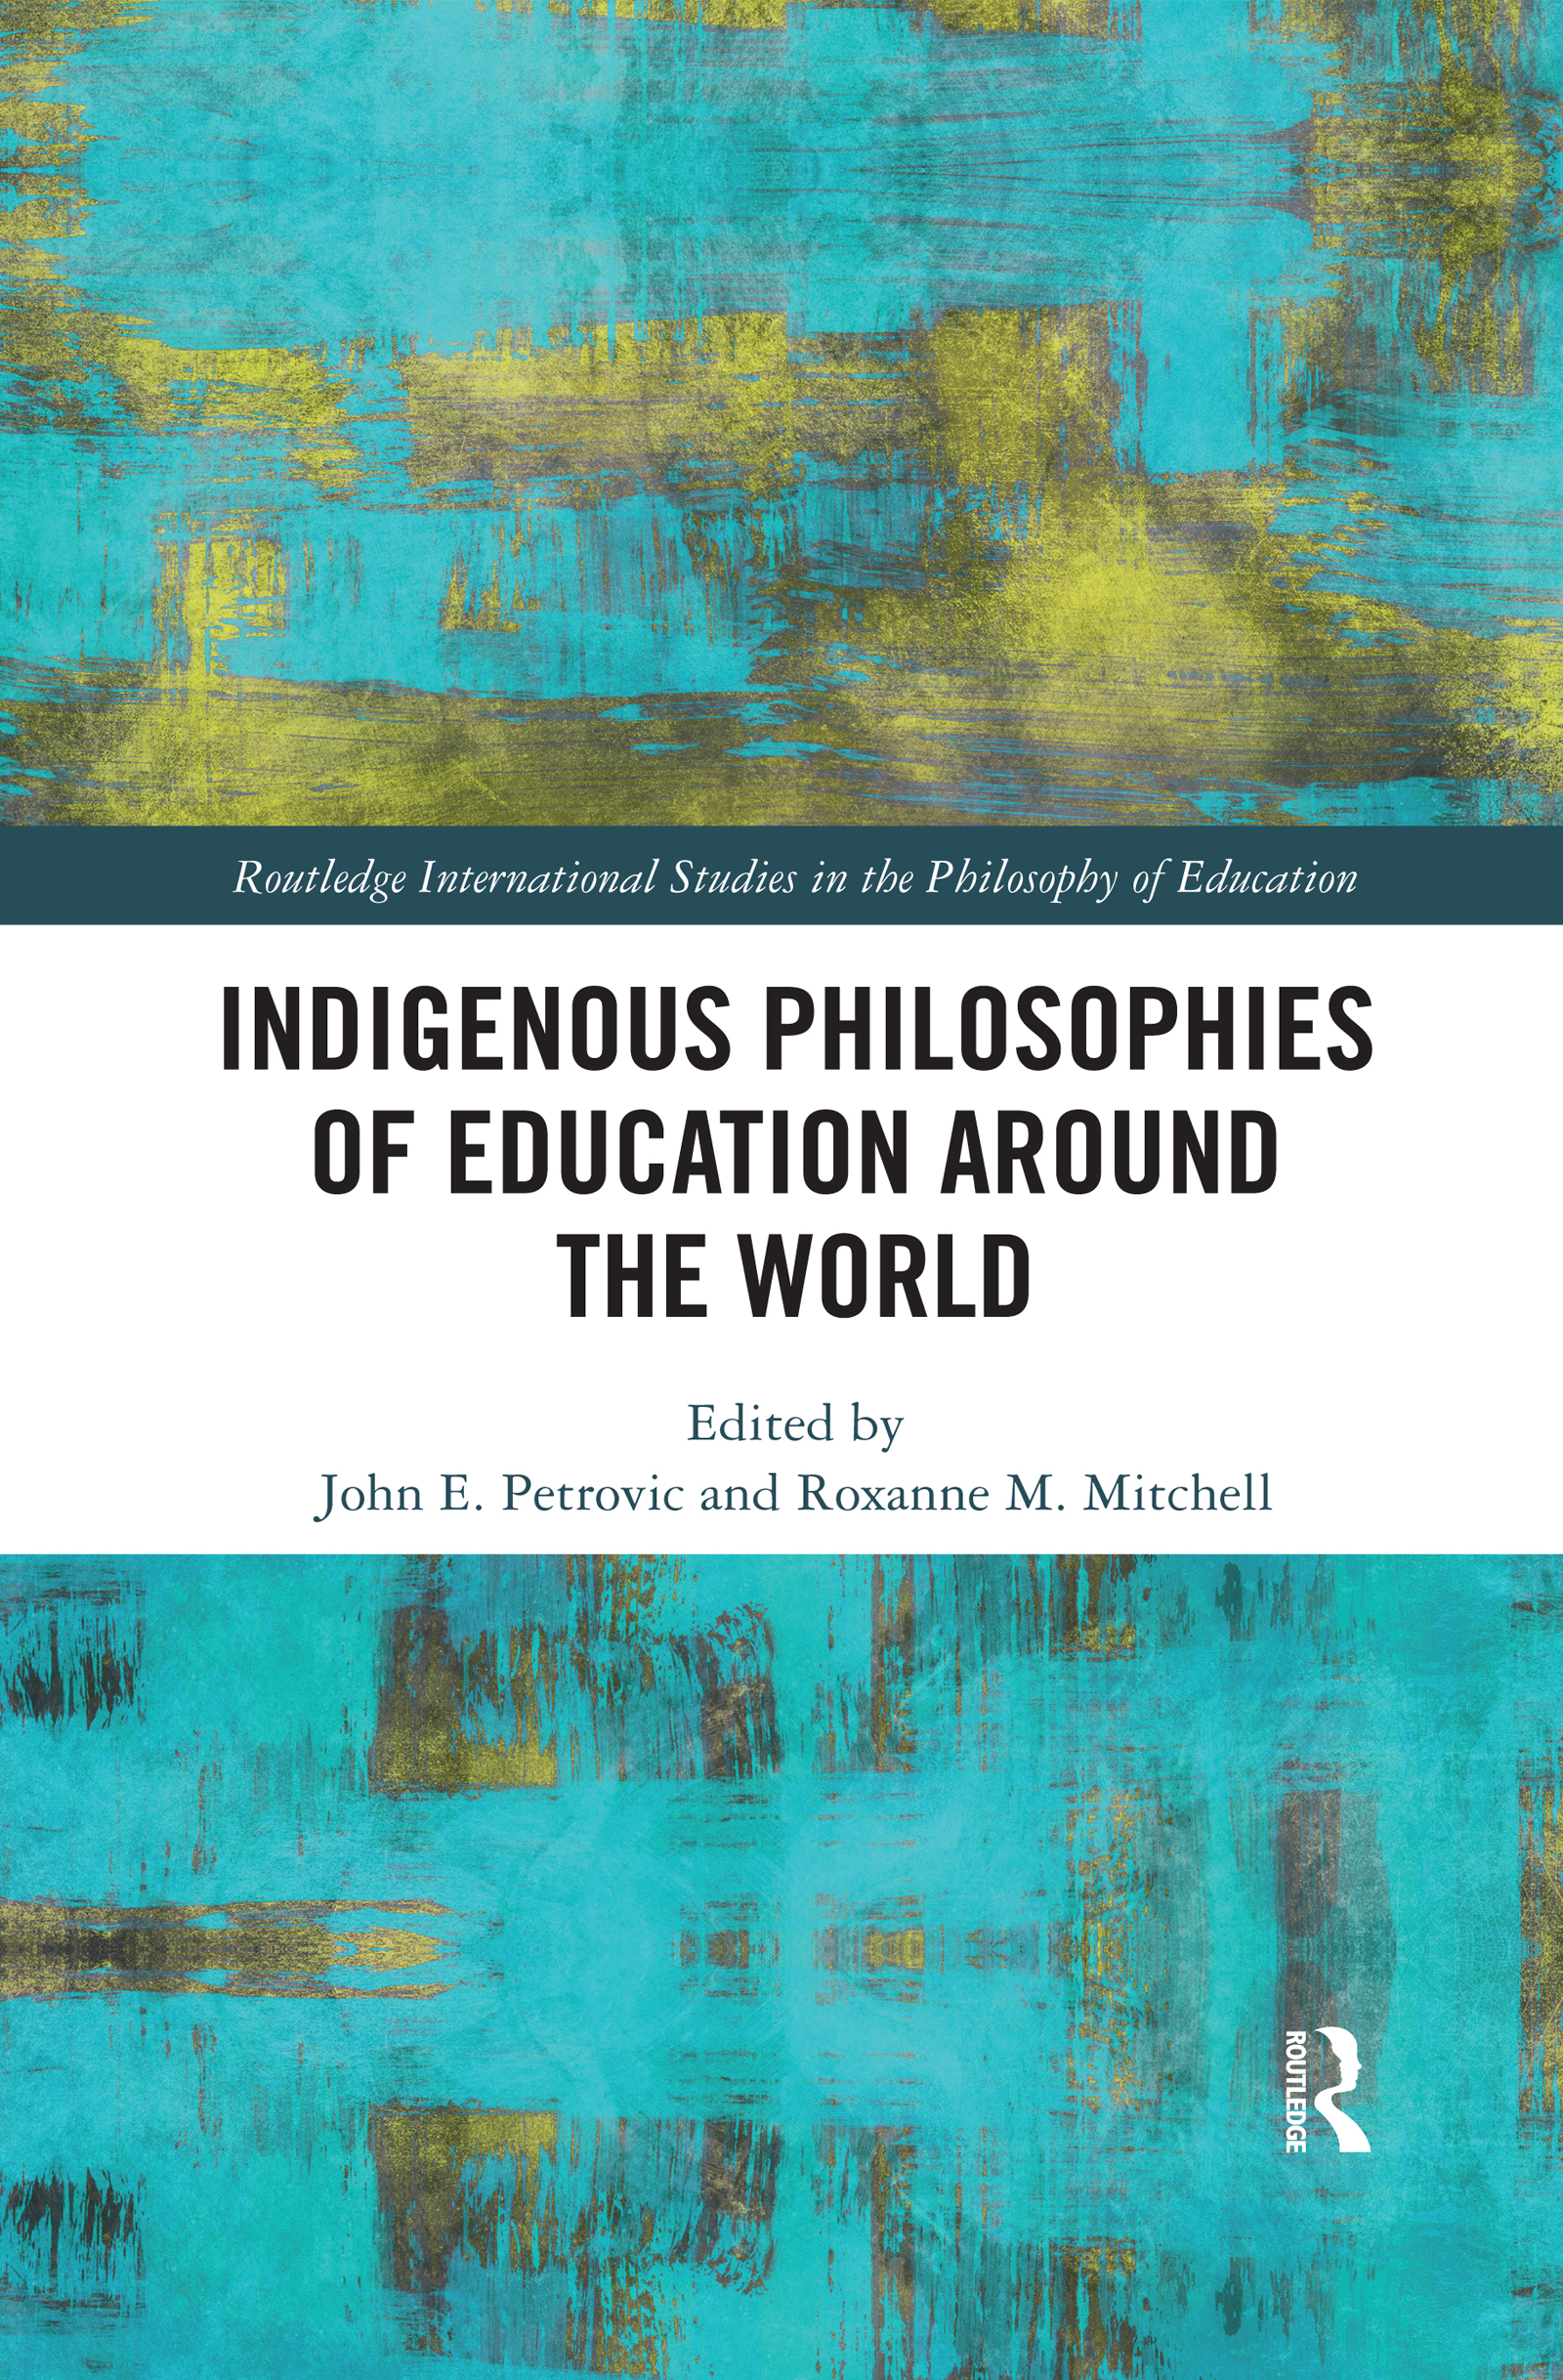 Indigenous Philosophies of Education Around the World